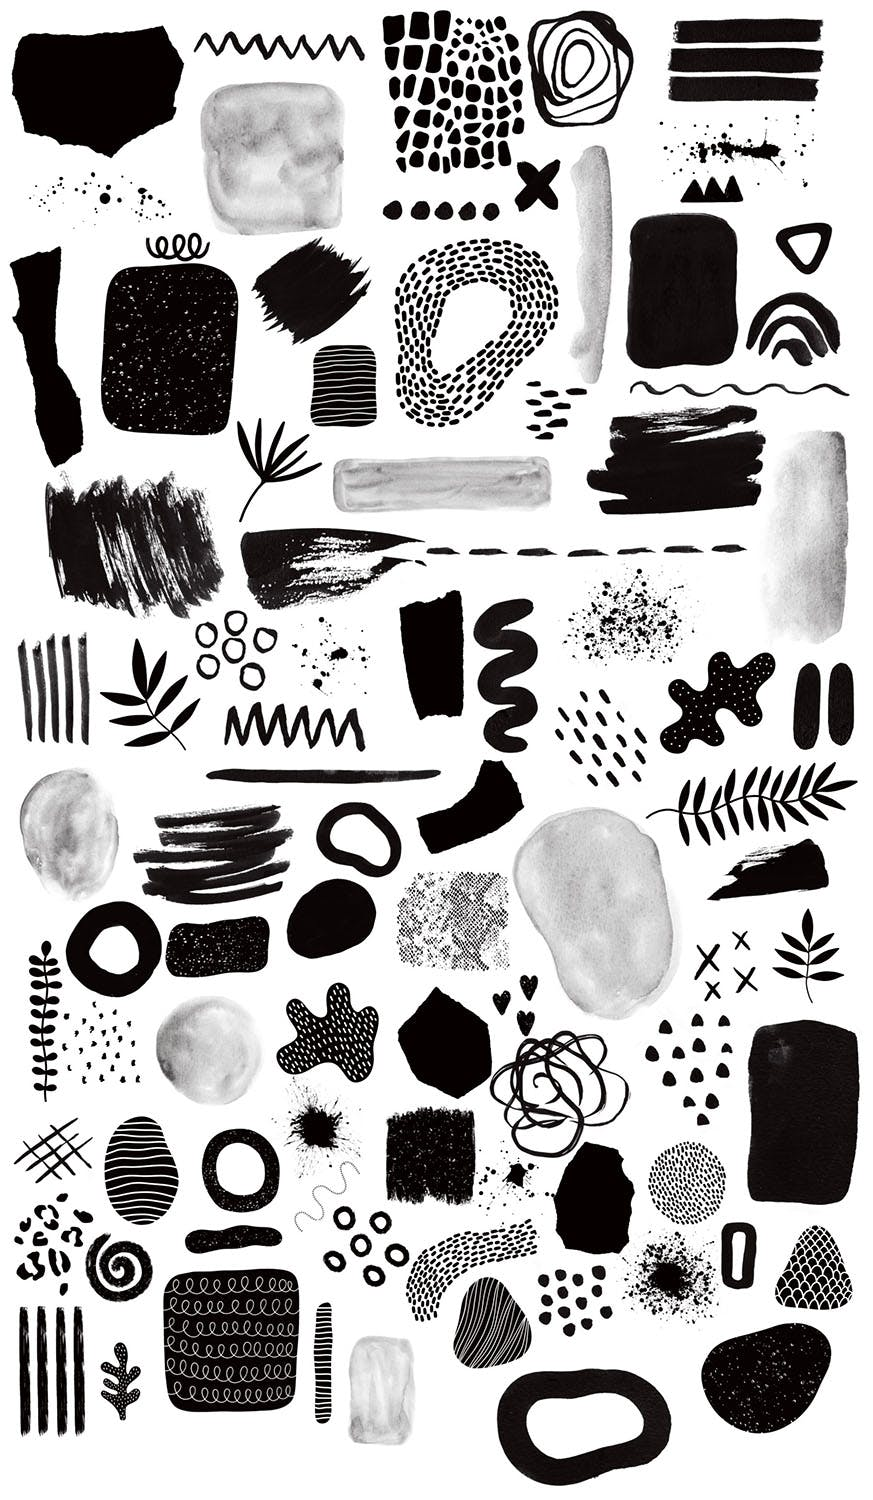 Procreate: Abstract Stamp Brushes - 2